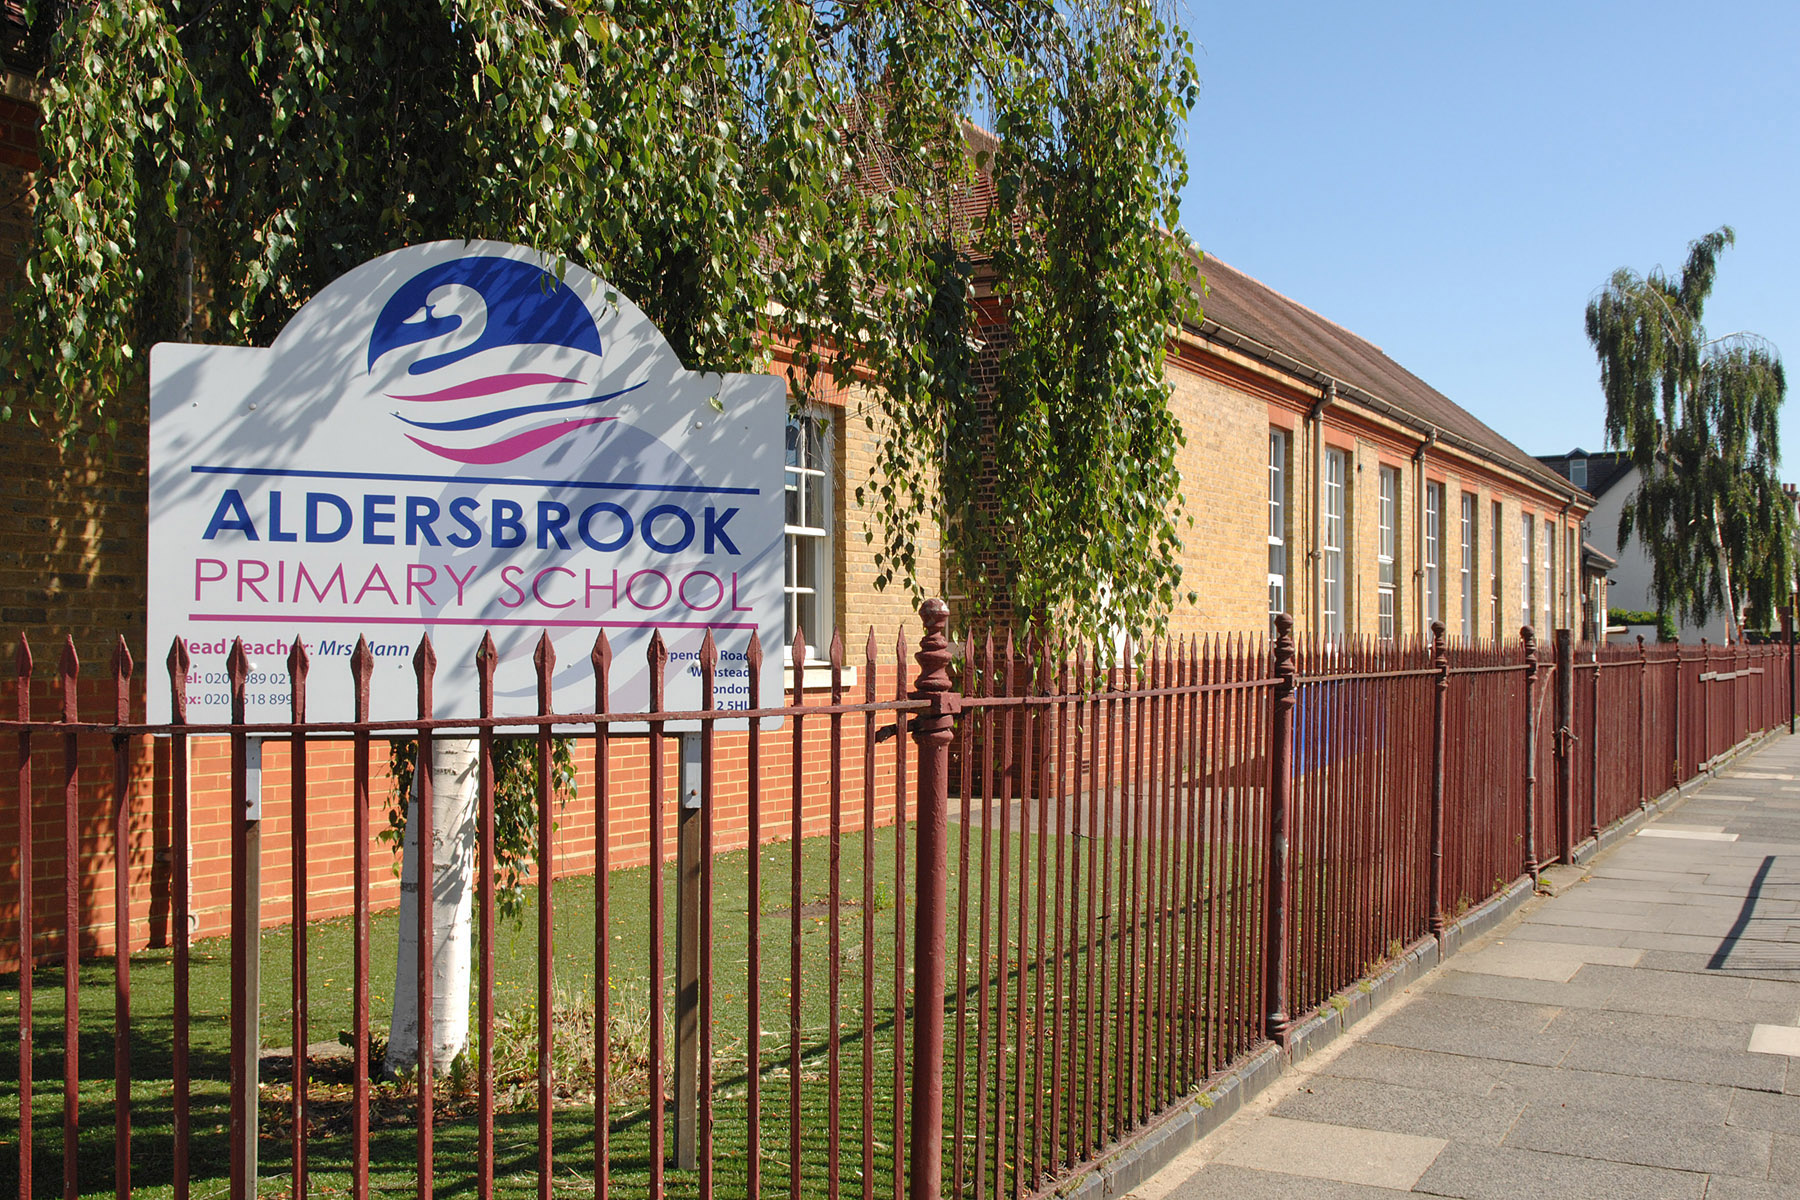 The fallen tree at Aldersbrook Primary School has led to concern over security